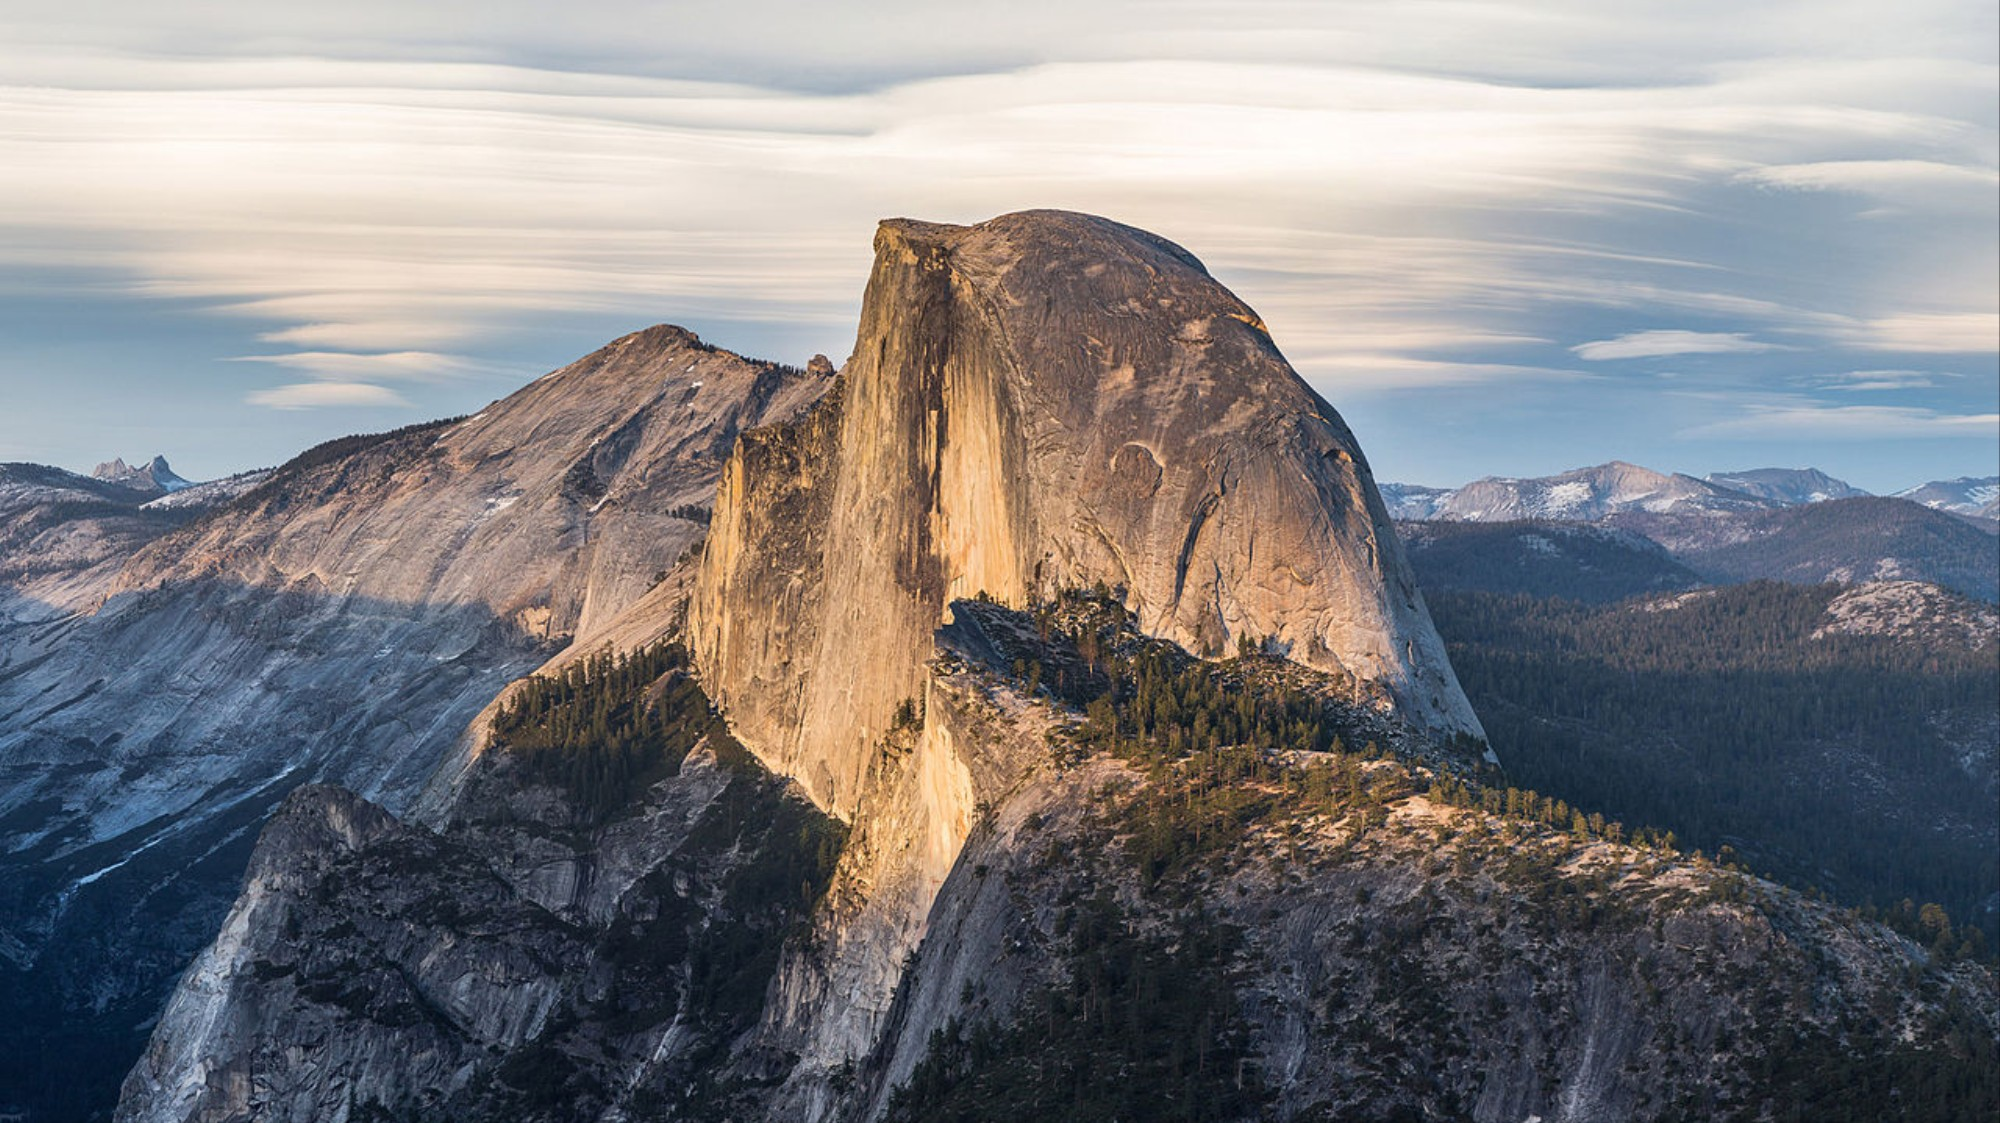 Yosemite National Park Death Went Unreported For a Week During